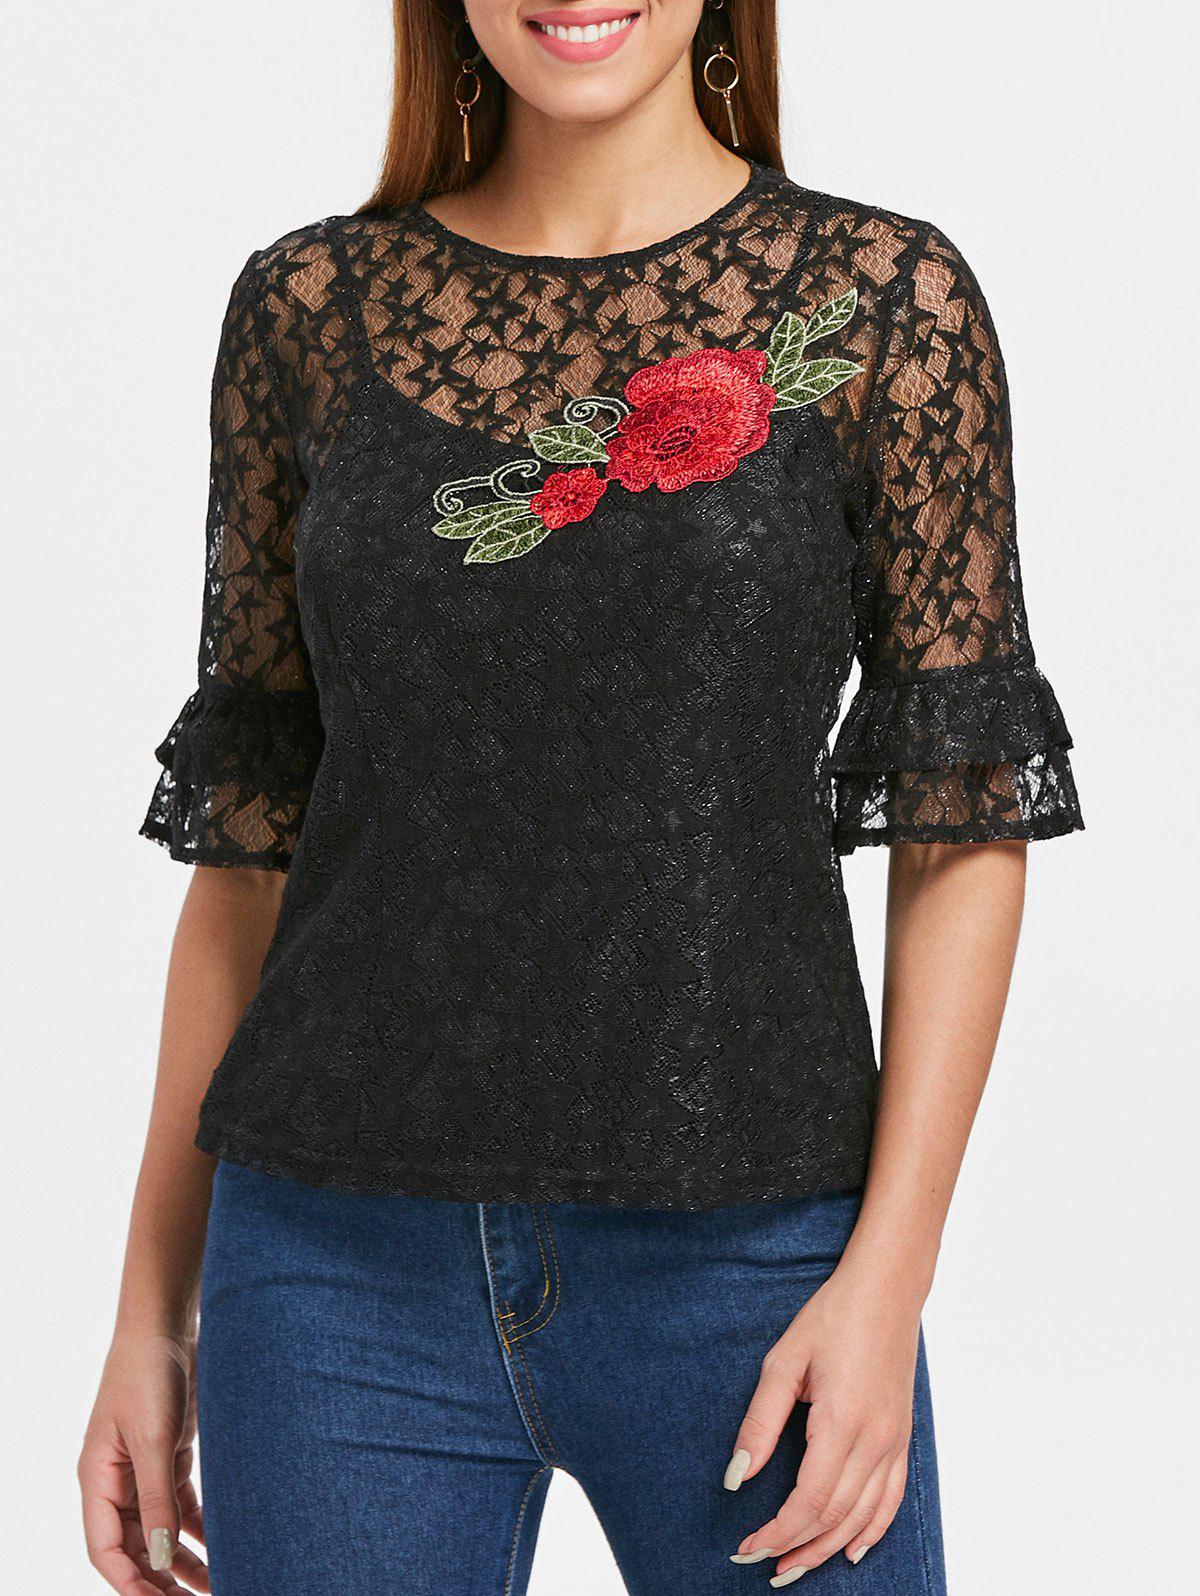 Store Embroidered Lace Top with Camisole